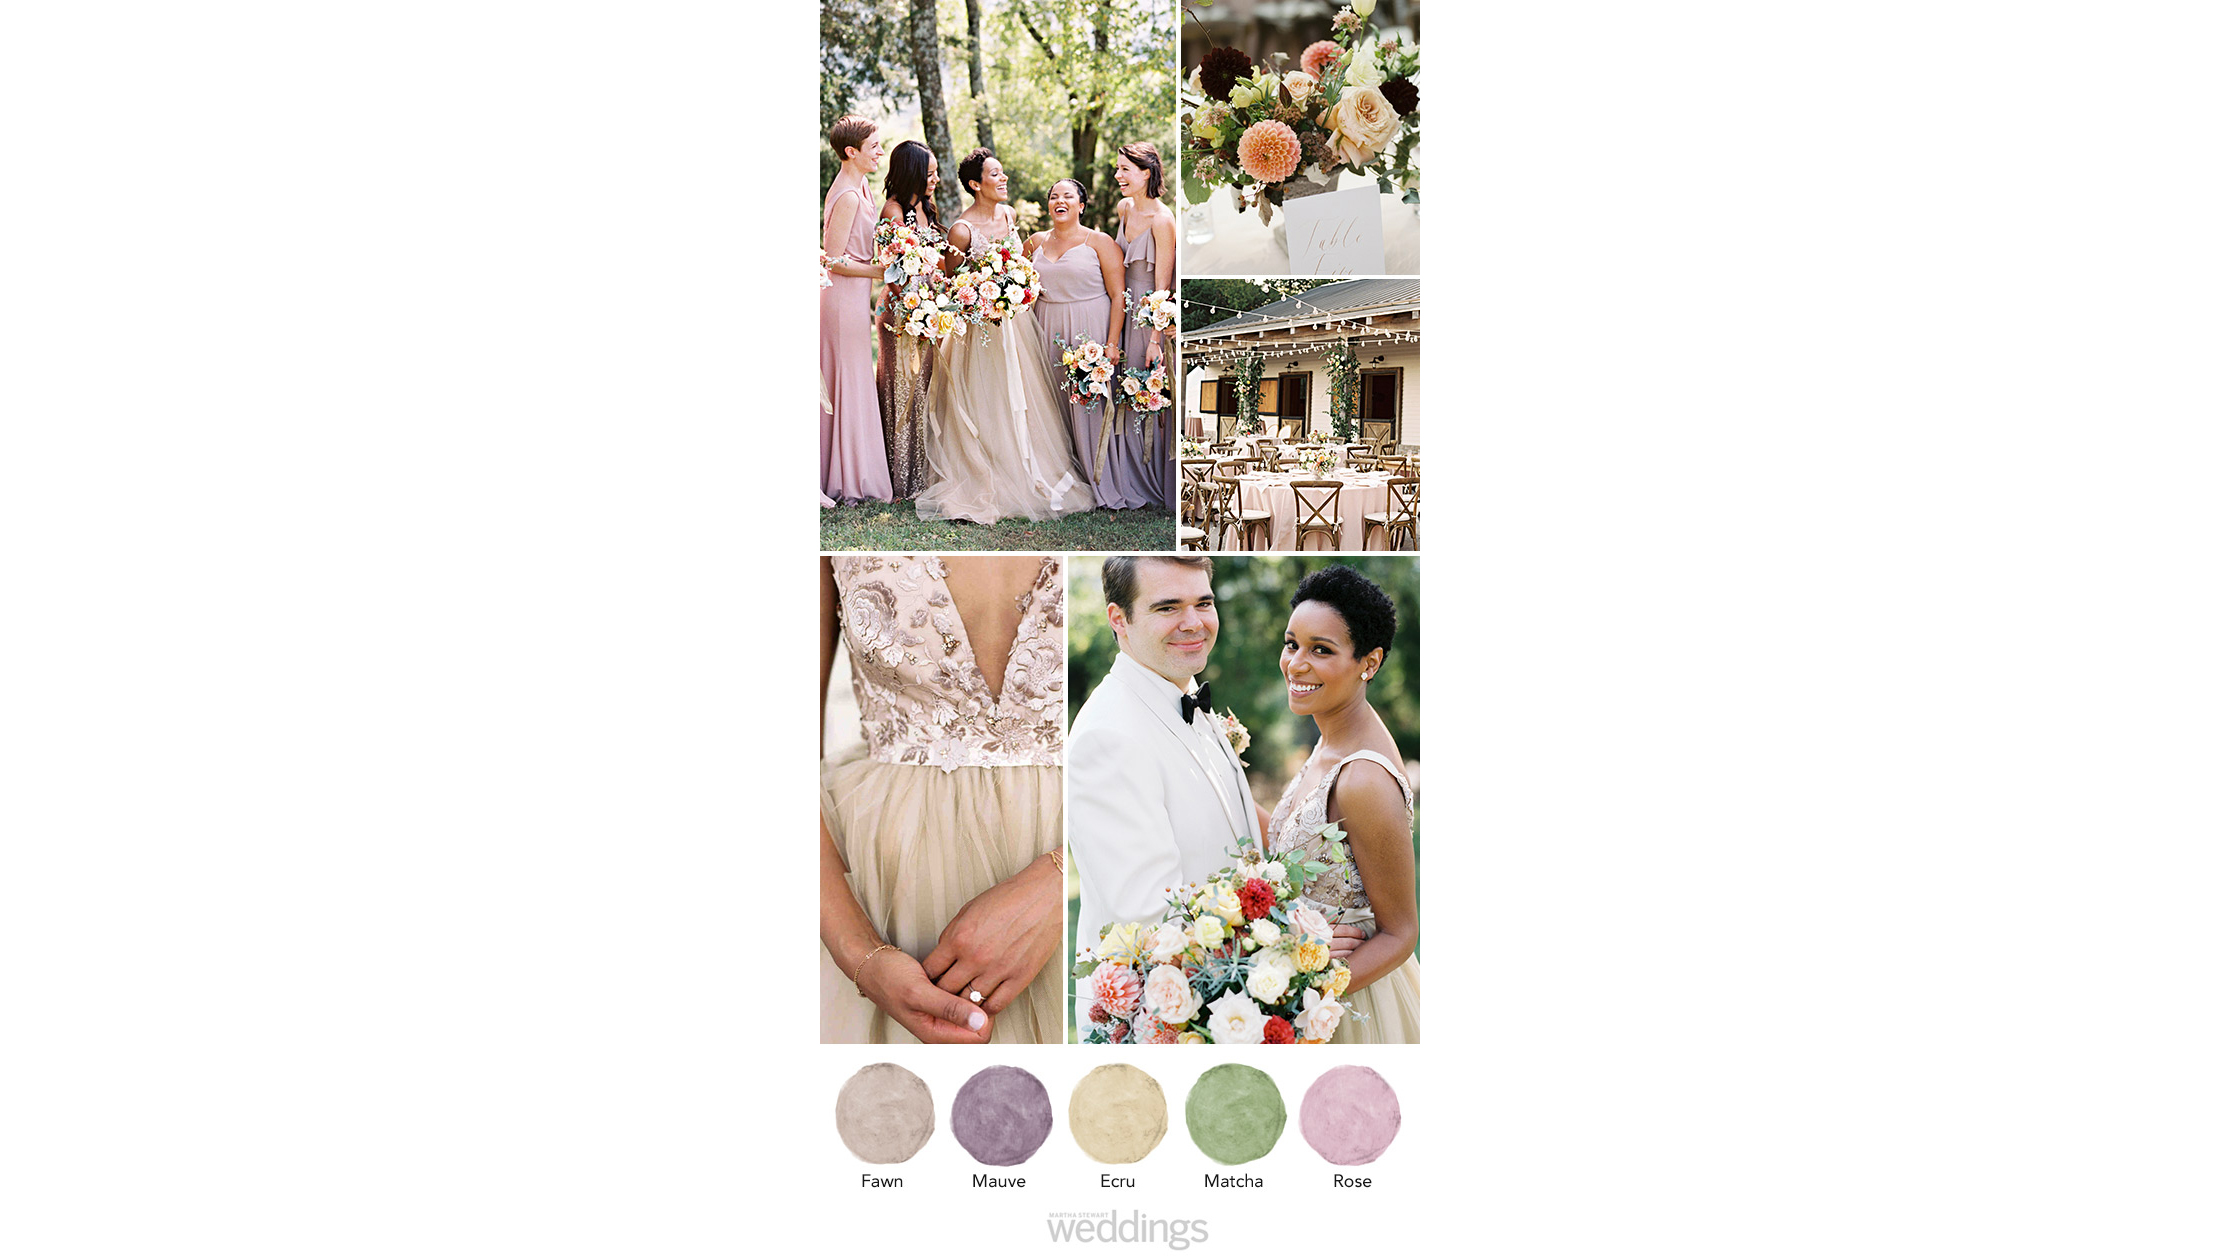 Mauve and Gold wedding color palette ideas